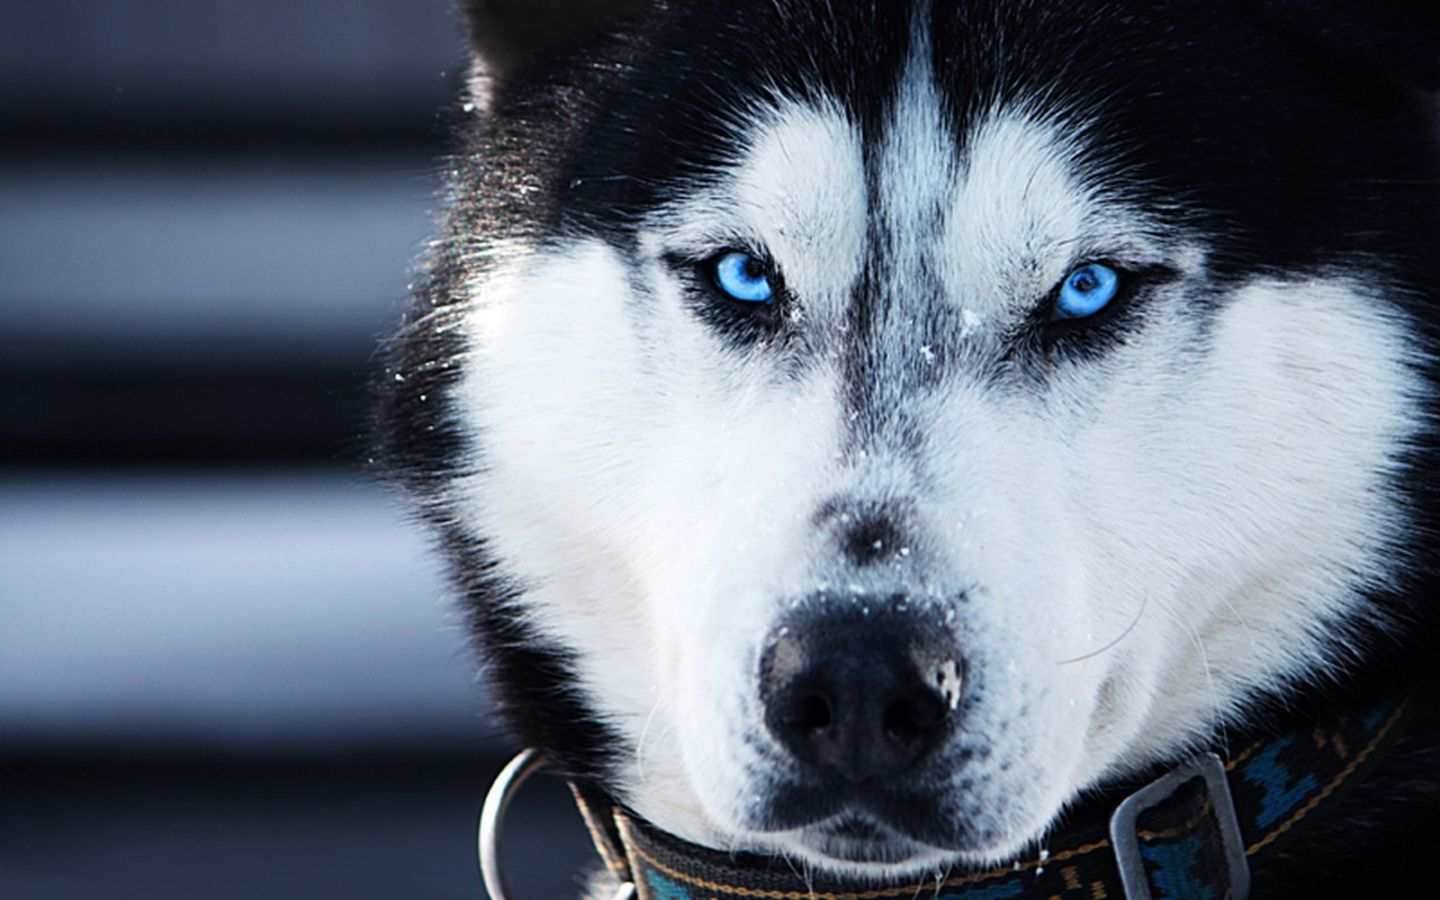 Siberian Husky Puppies With Blue Eyes Wallpaper   HD ...